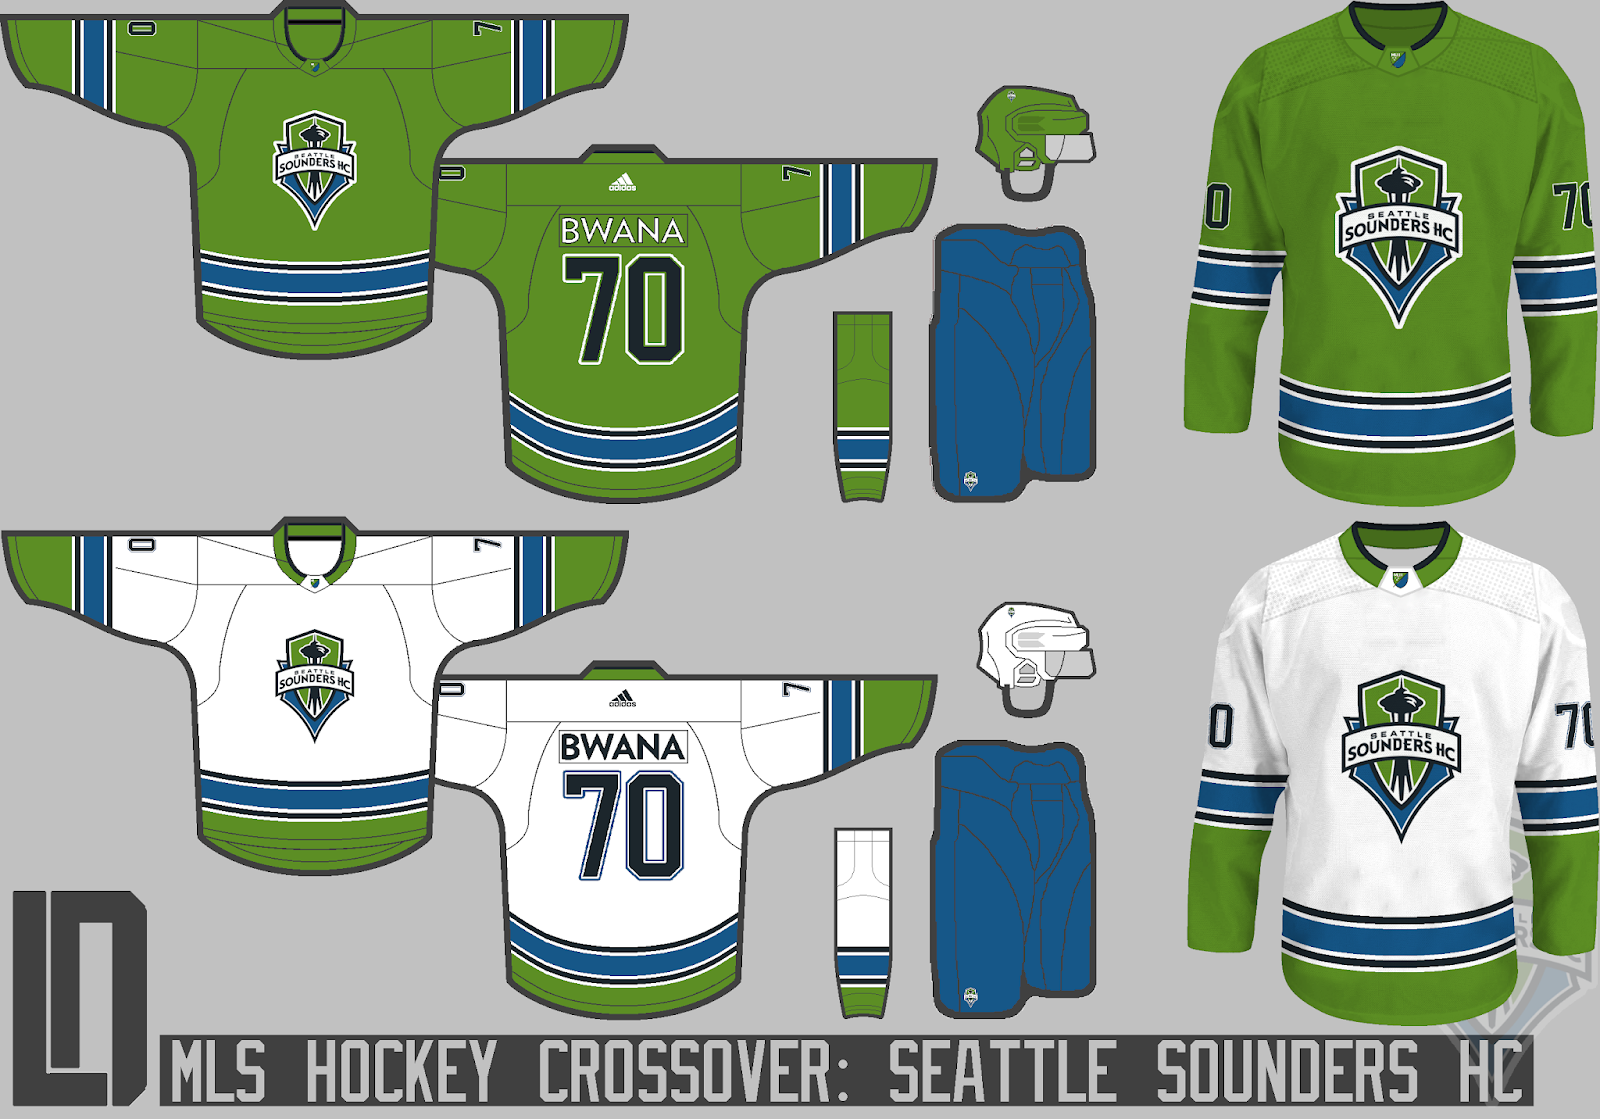 Seattle+Sounders+HC+Concept.png